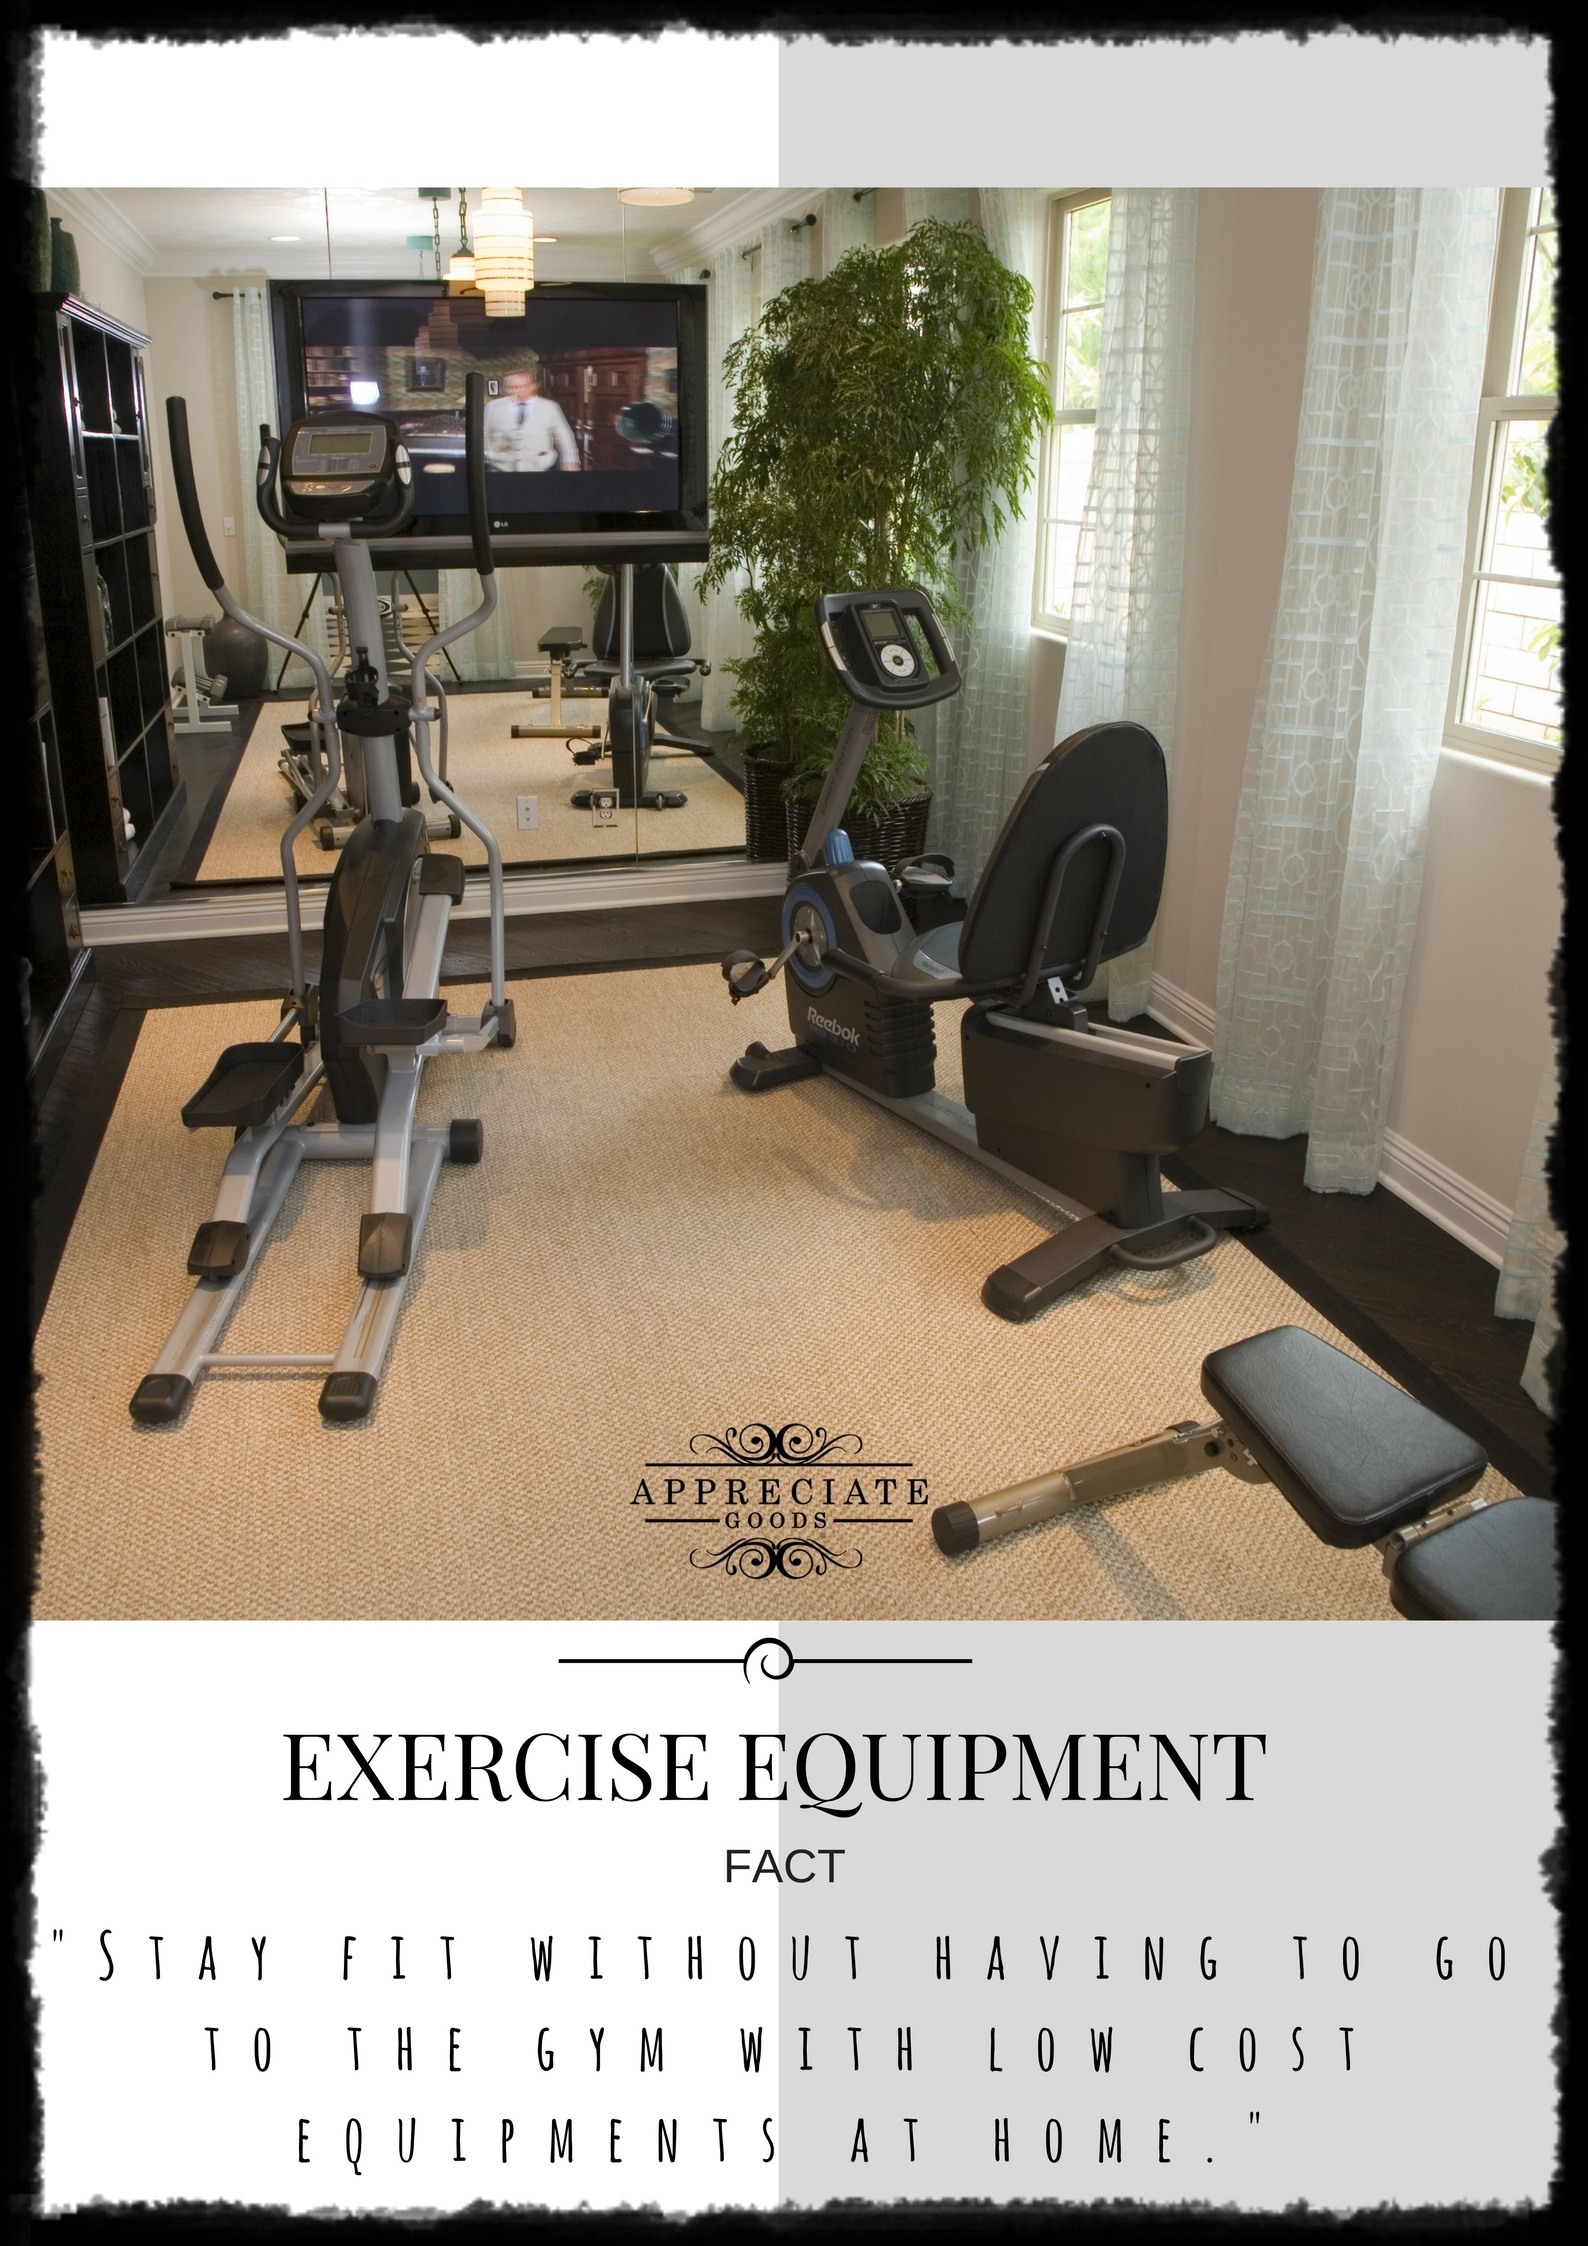 Review Exercise Equipment